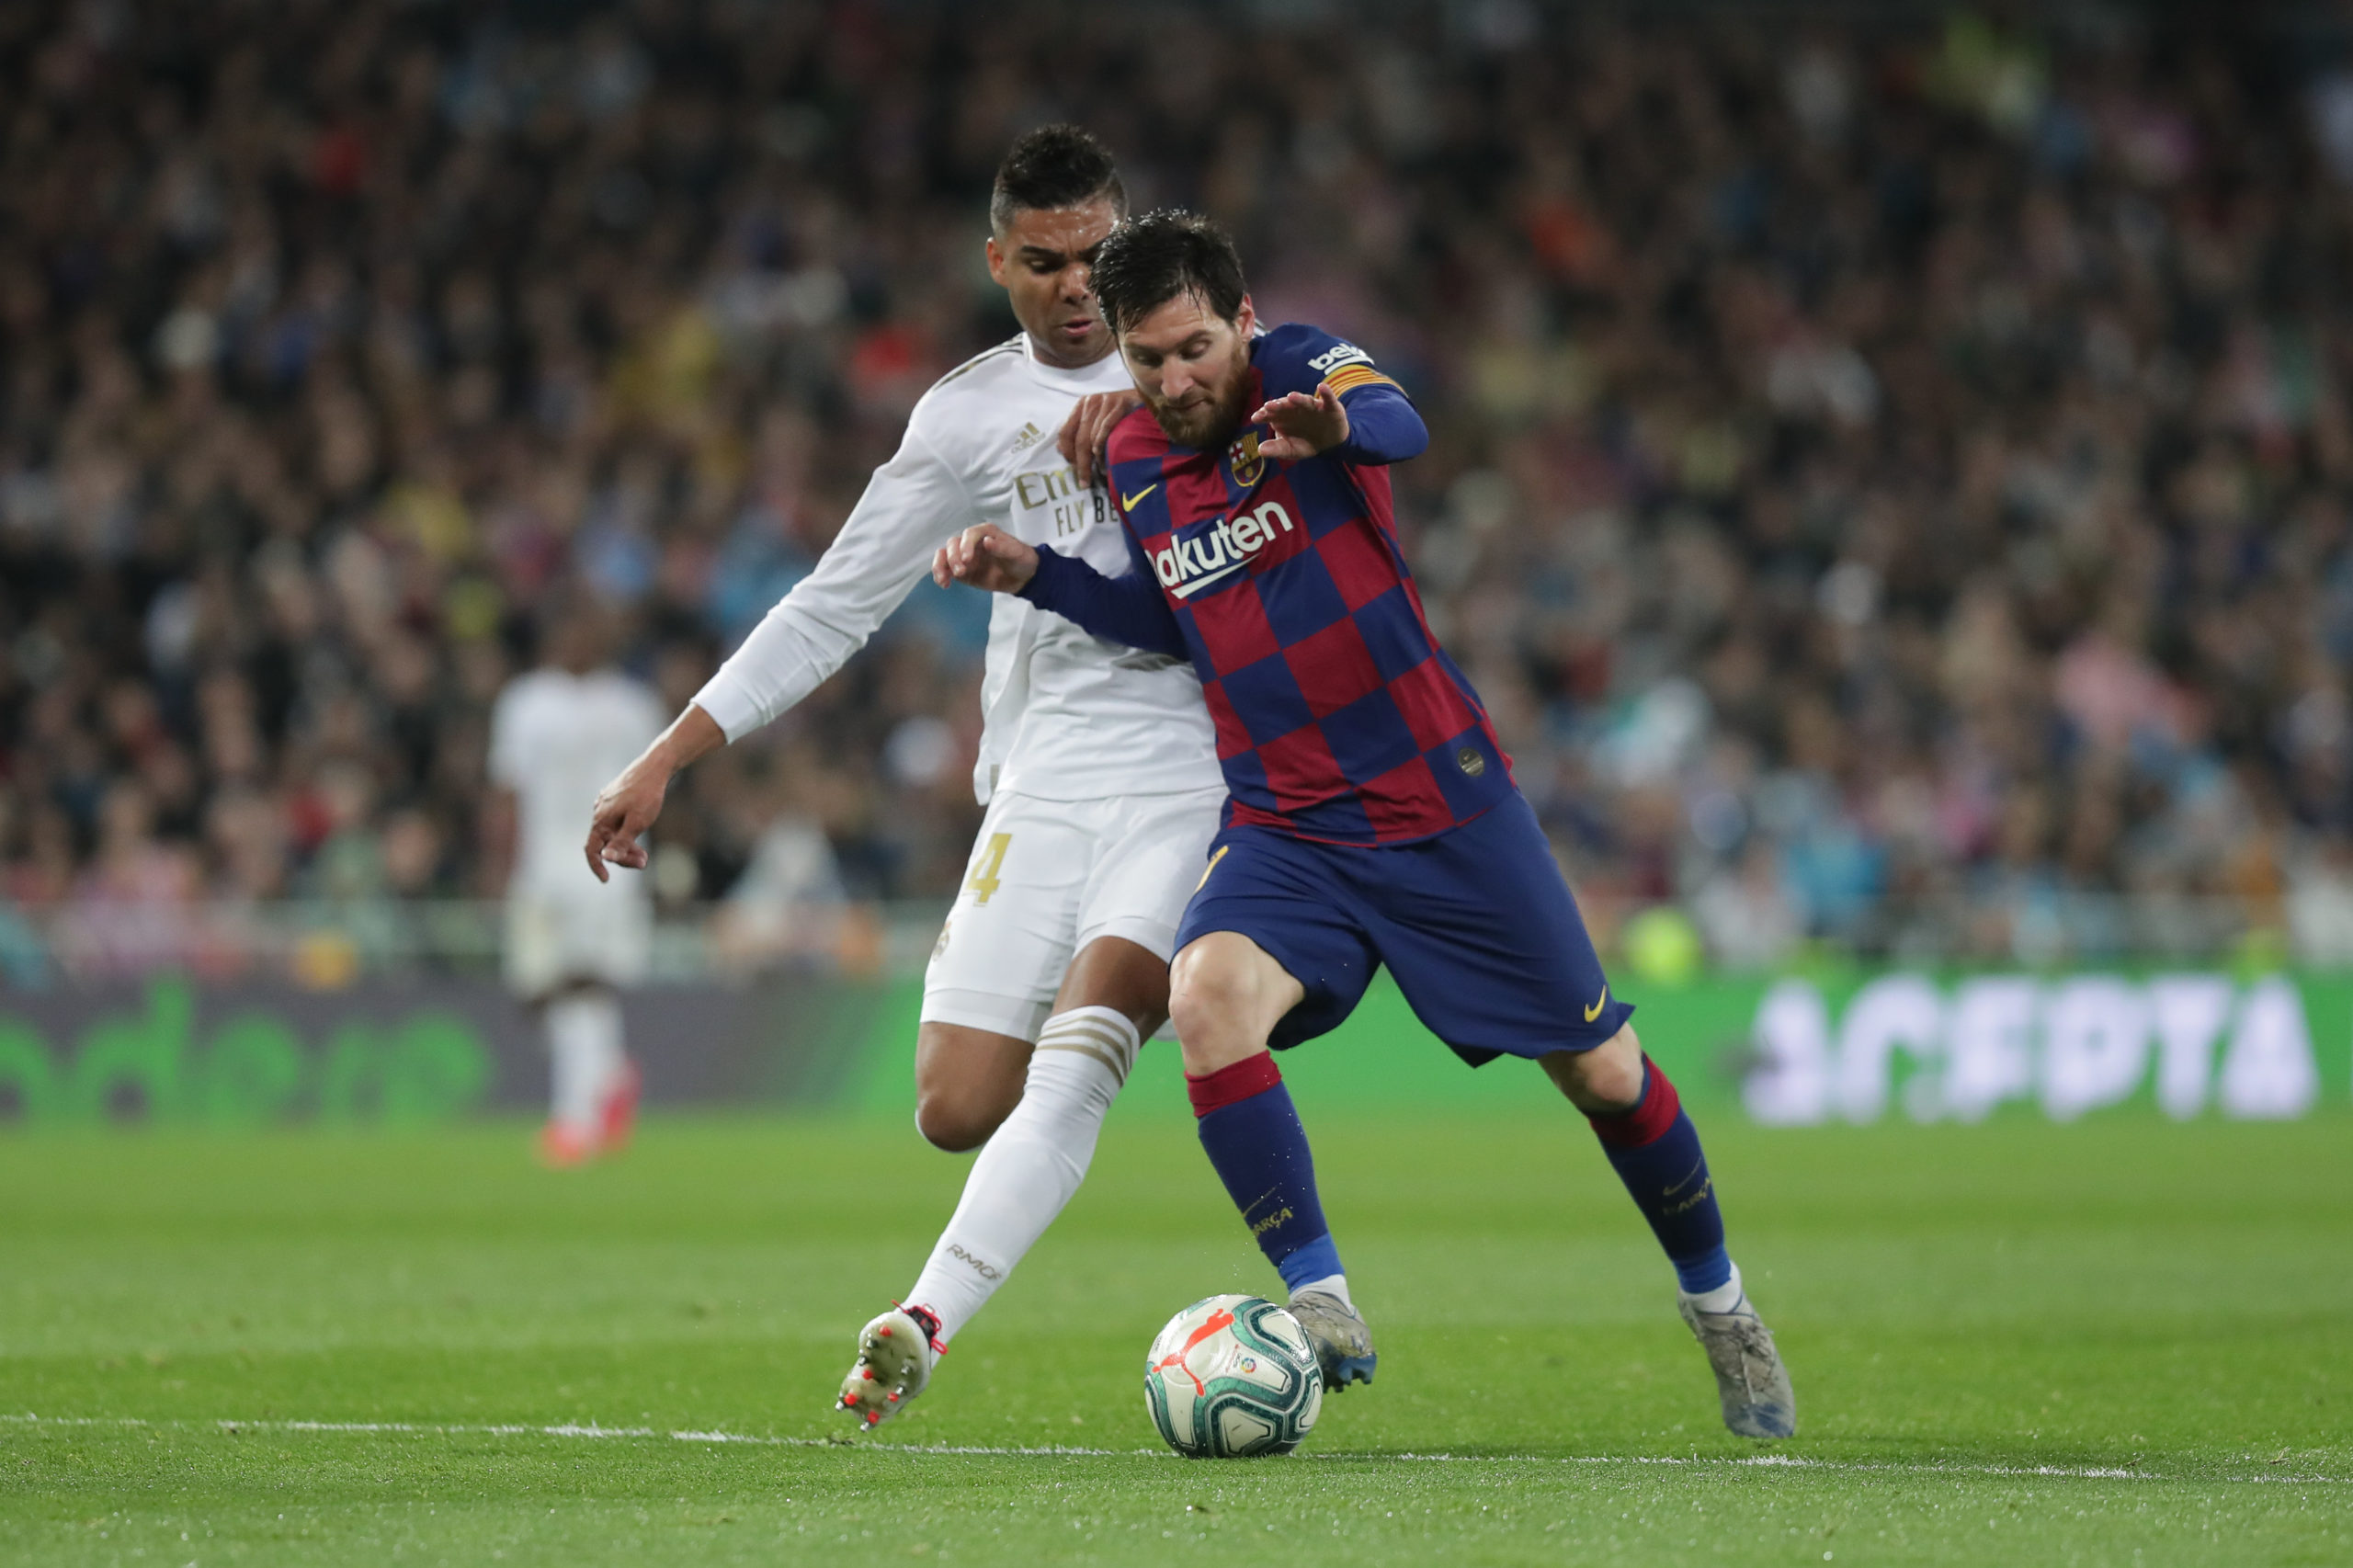 Lionel-messi-barceloba-vs-real-madrid-el-clasico-getty-scaled